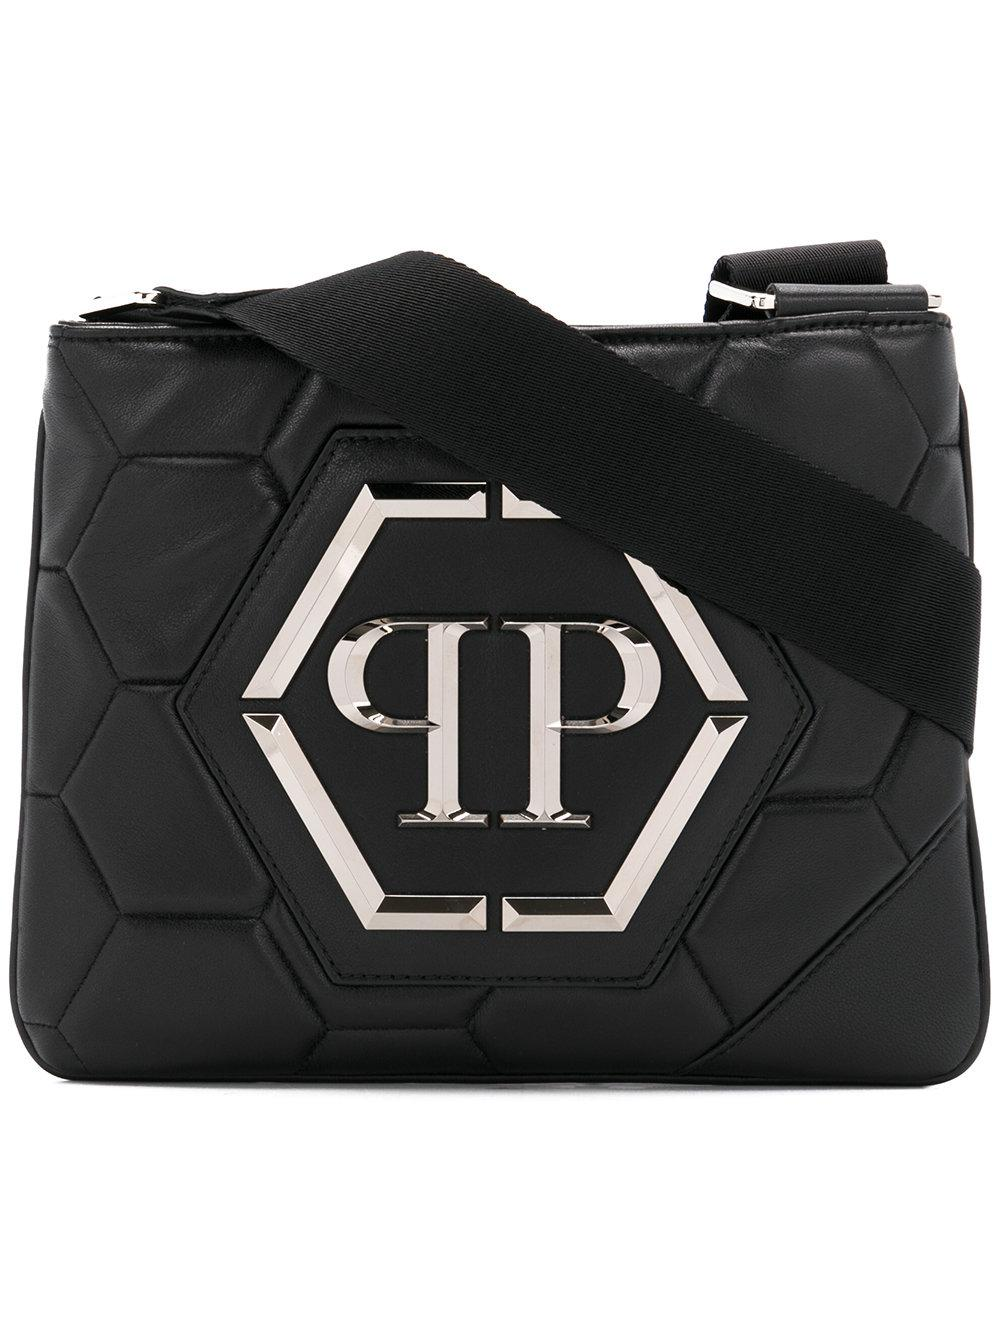 lyst philipp plein logo messenger bag in black for men. Black Bedroom Furniture Sets. Home Design Ideas